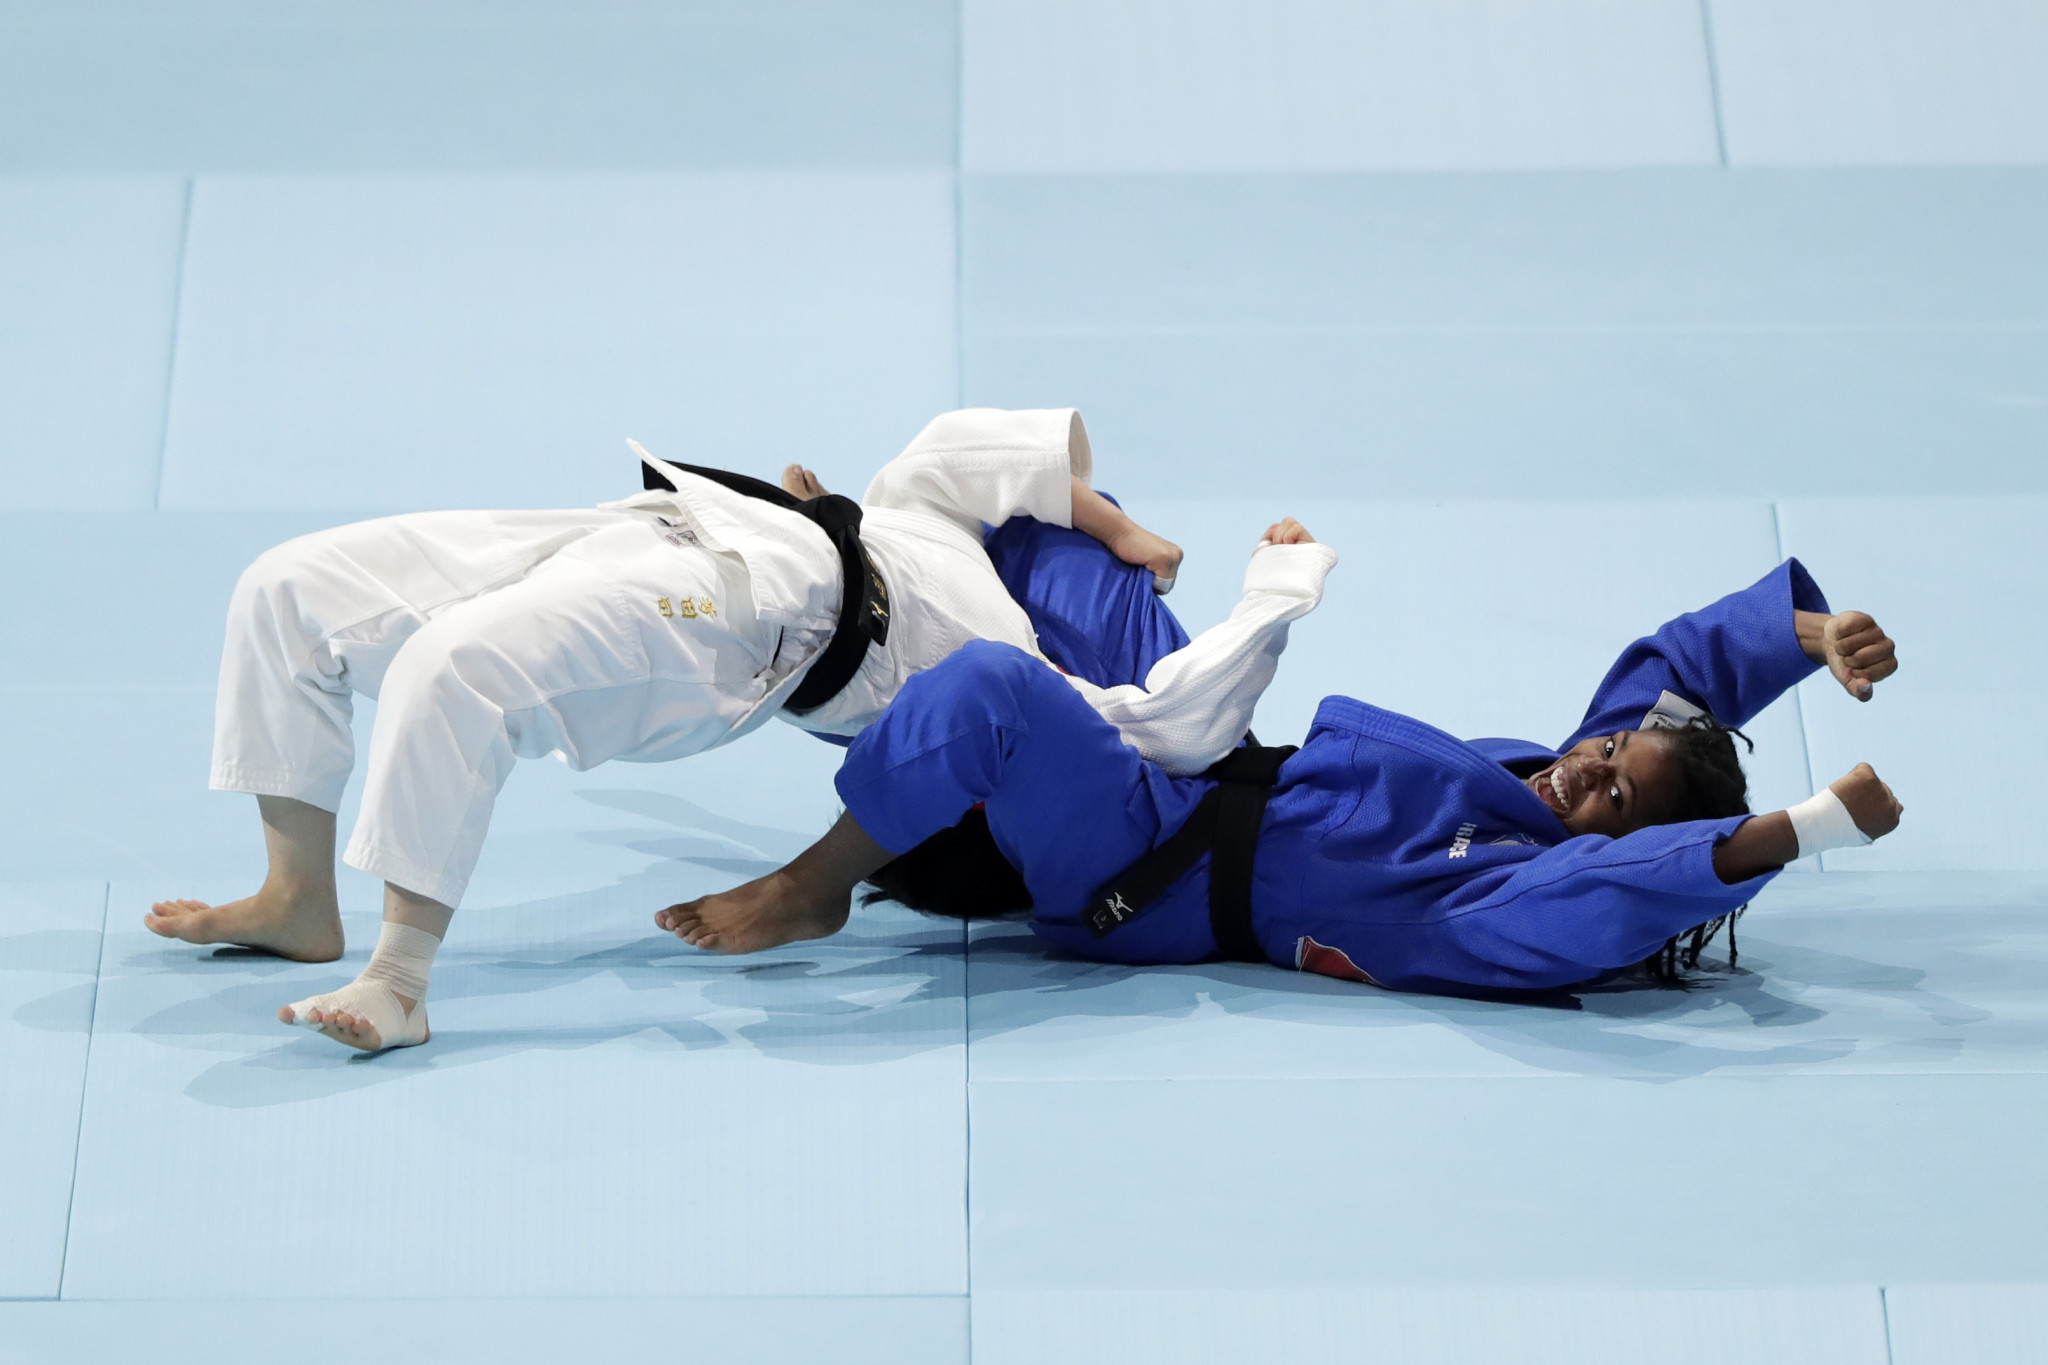 Sarah-Leonie Cysique stunned Tsukasa Yoshida with a 24-second ippon ©Getty Images